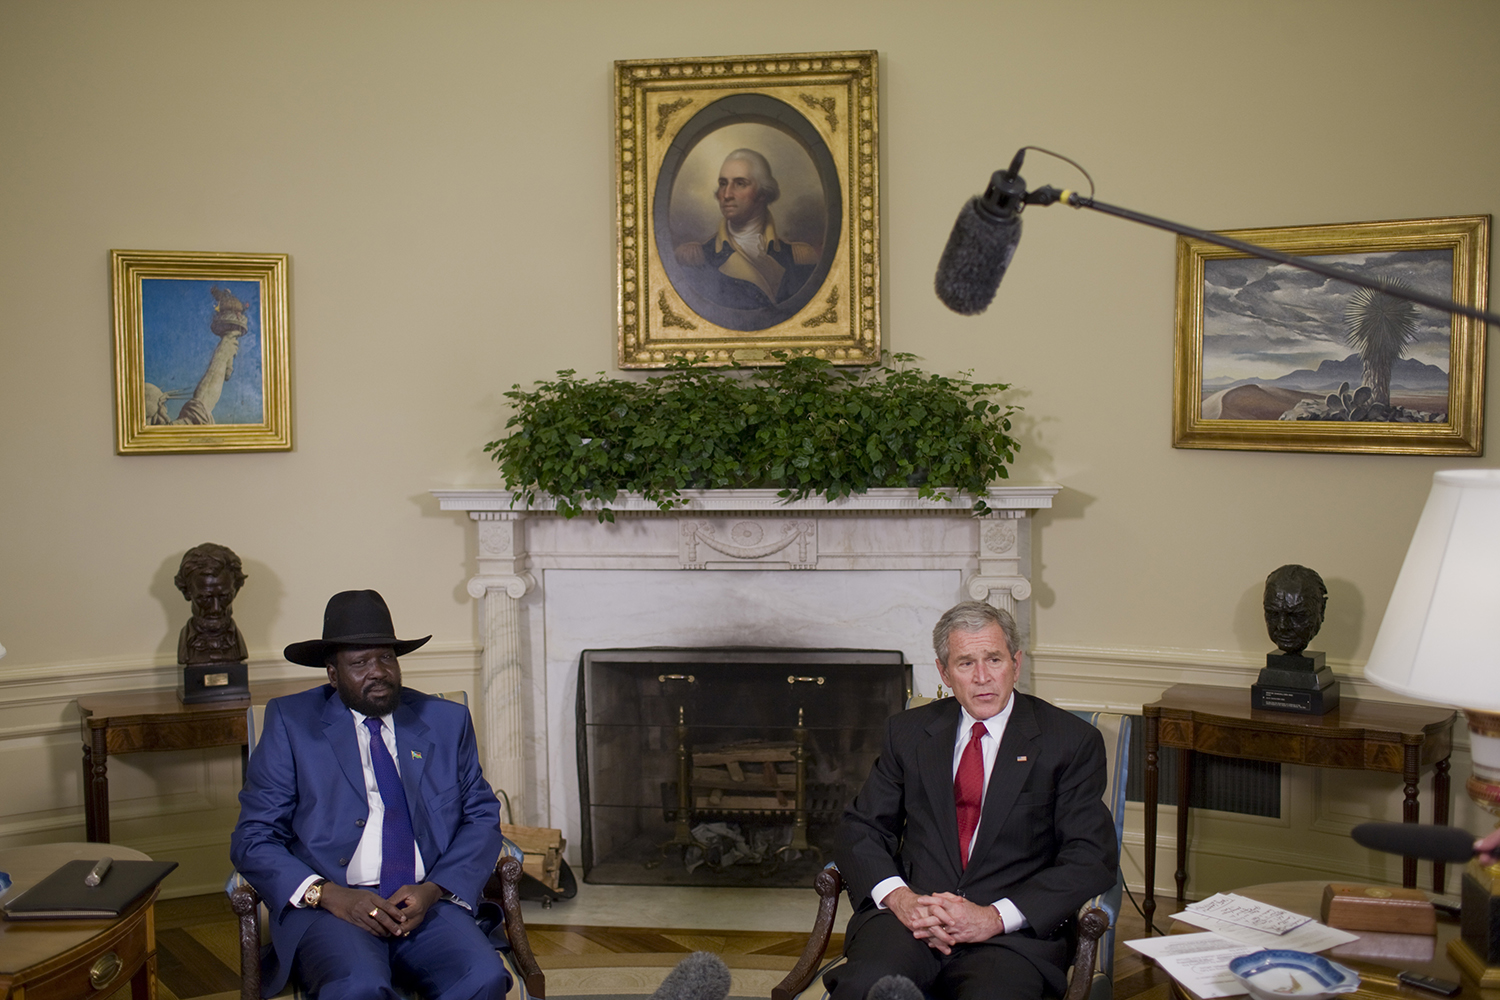 U.S. President George W. Bush meets with Kiir, then Sudan's first vice, in the Oval Office at the White House in Washington on Jan. 5, 2009.